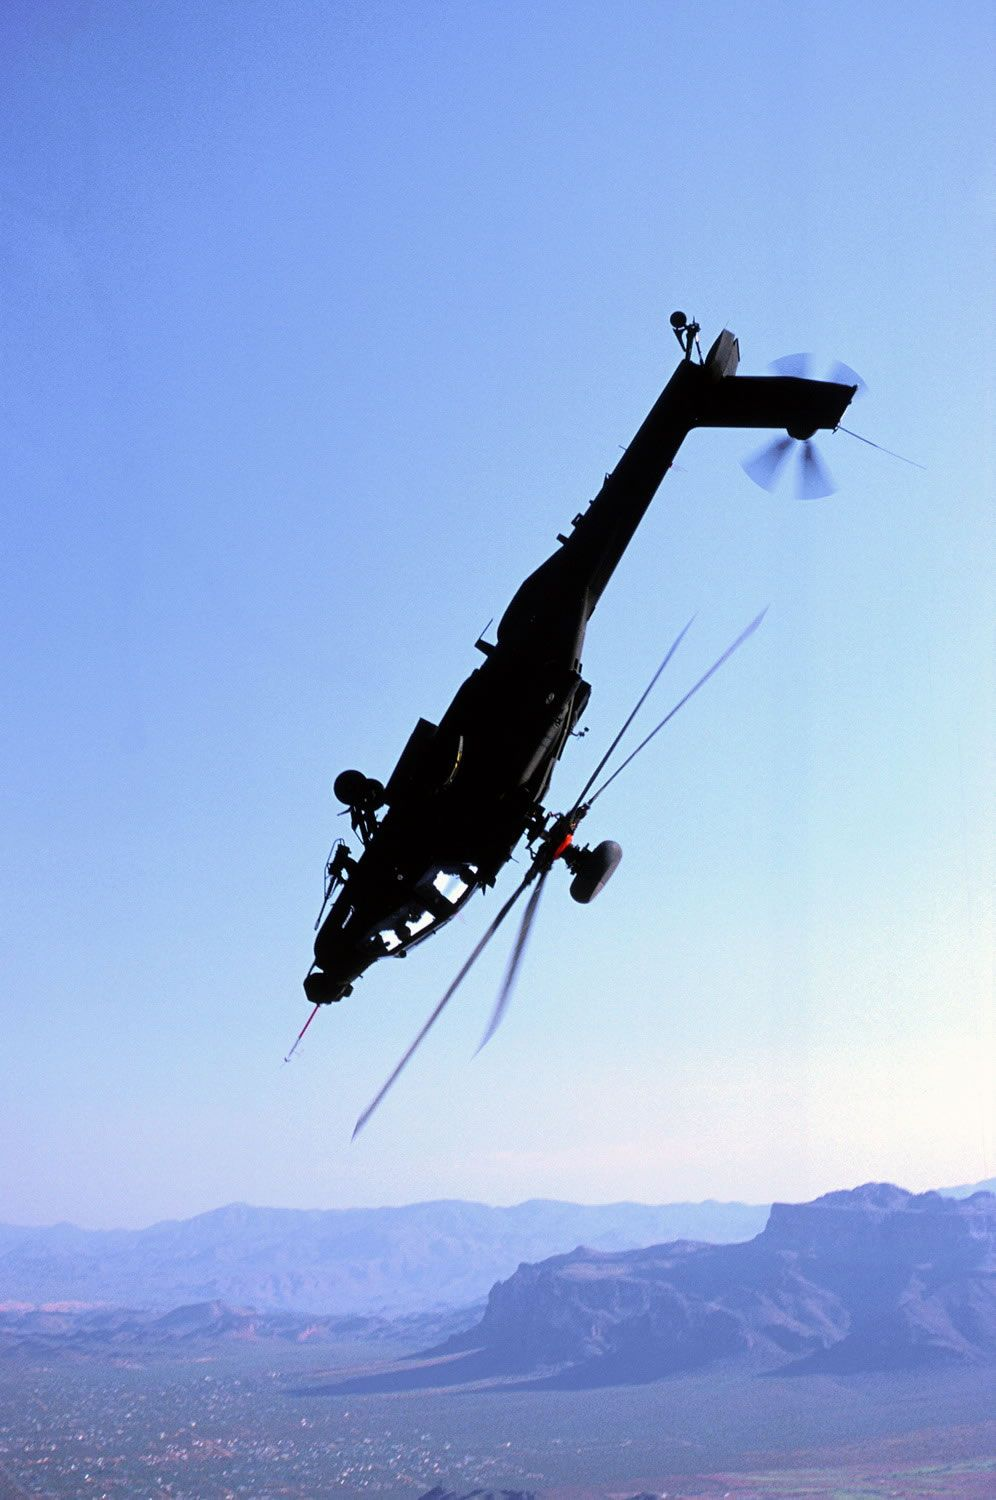 medium resolution of ah 64 apache doing a flip which is no easy task for a helicopter